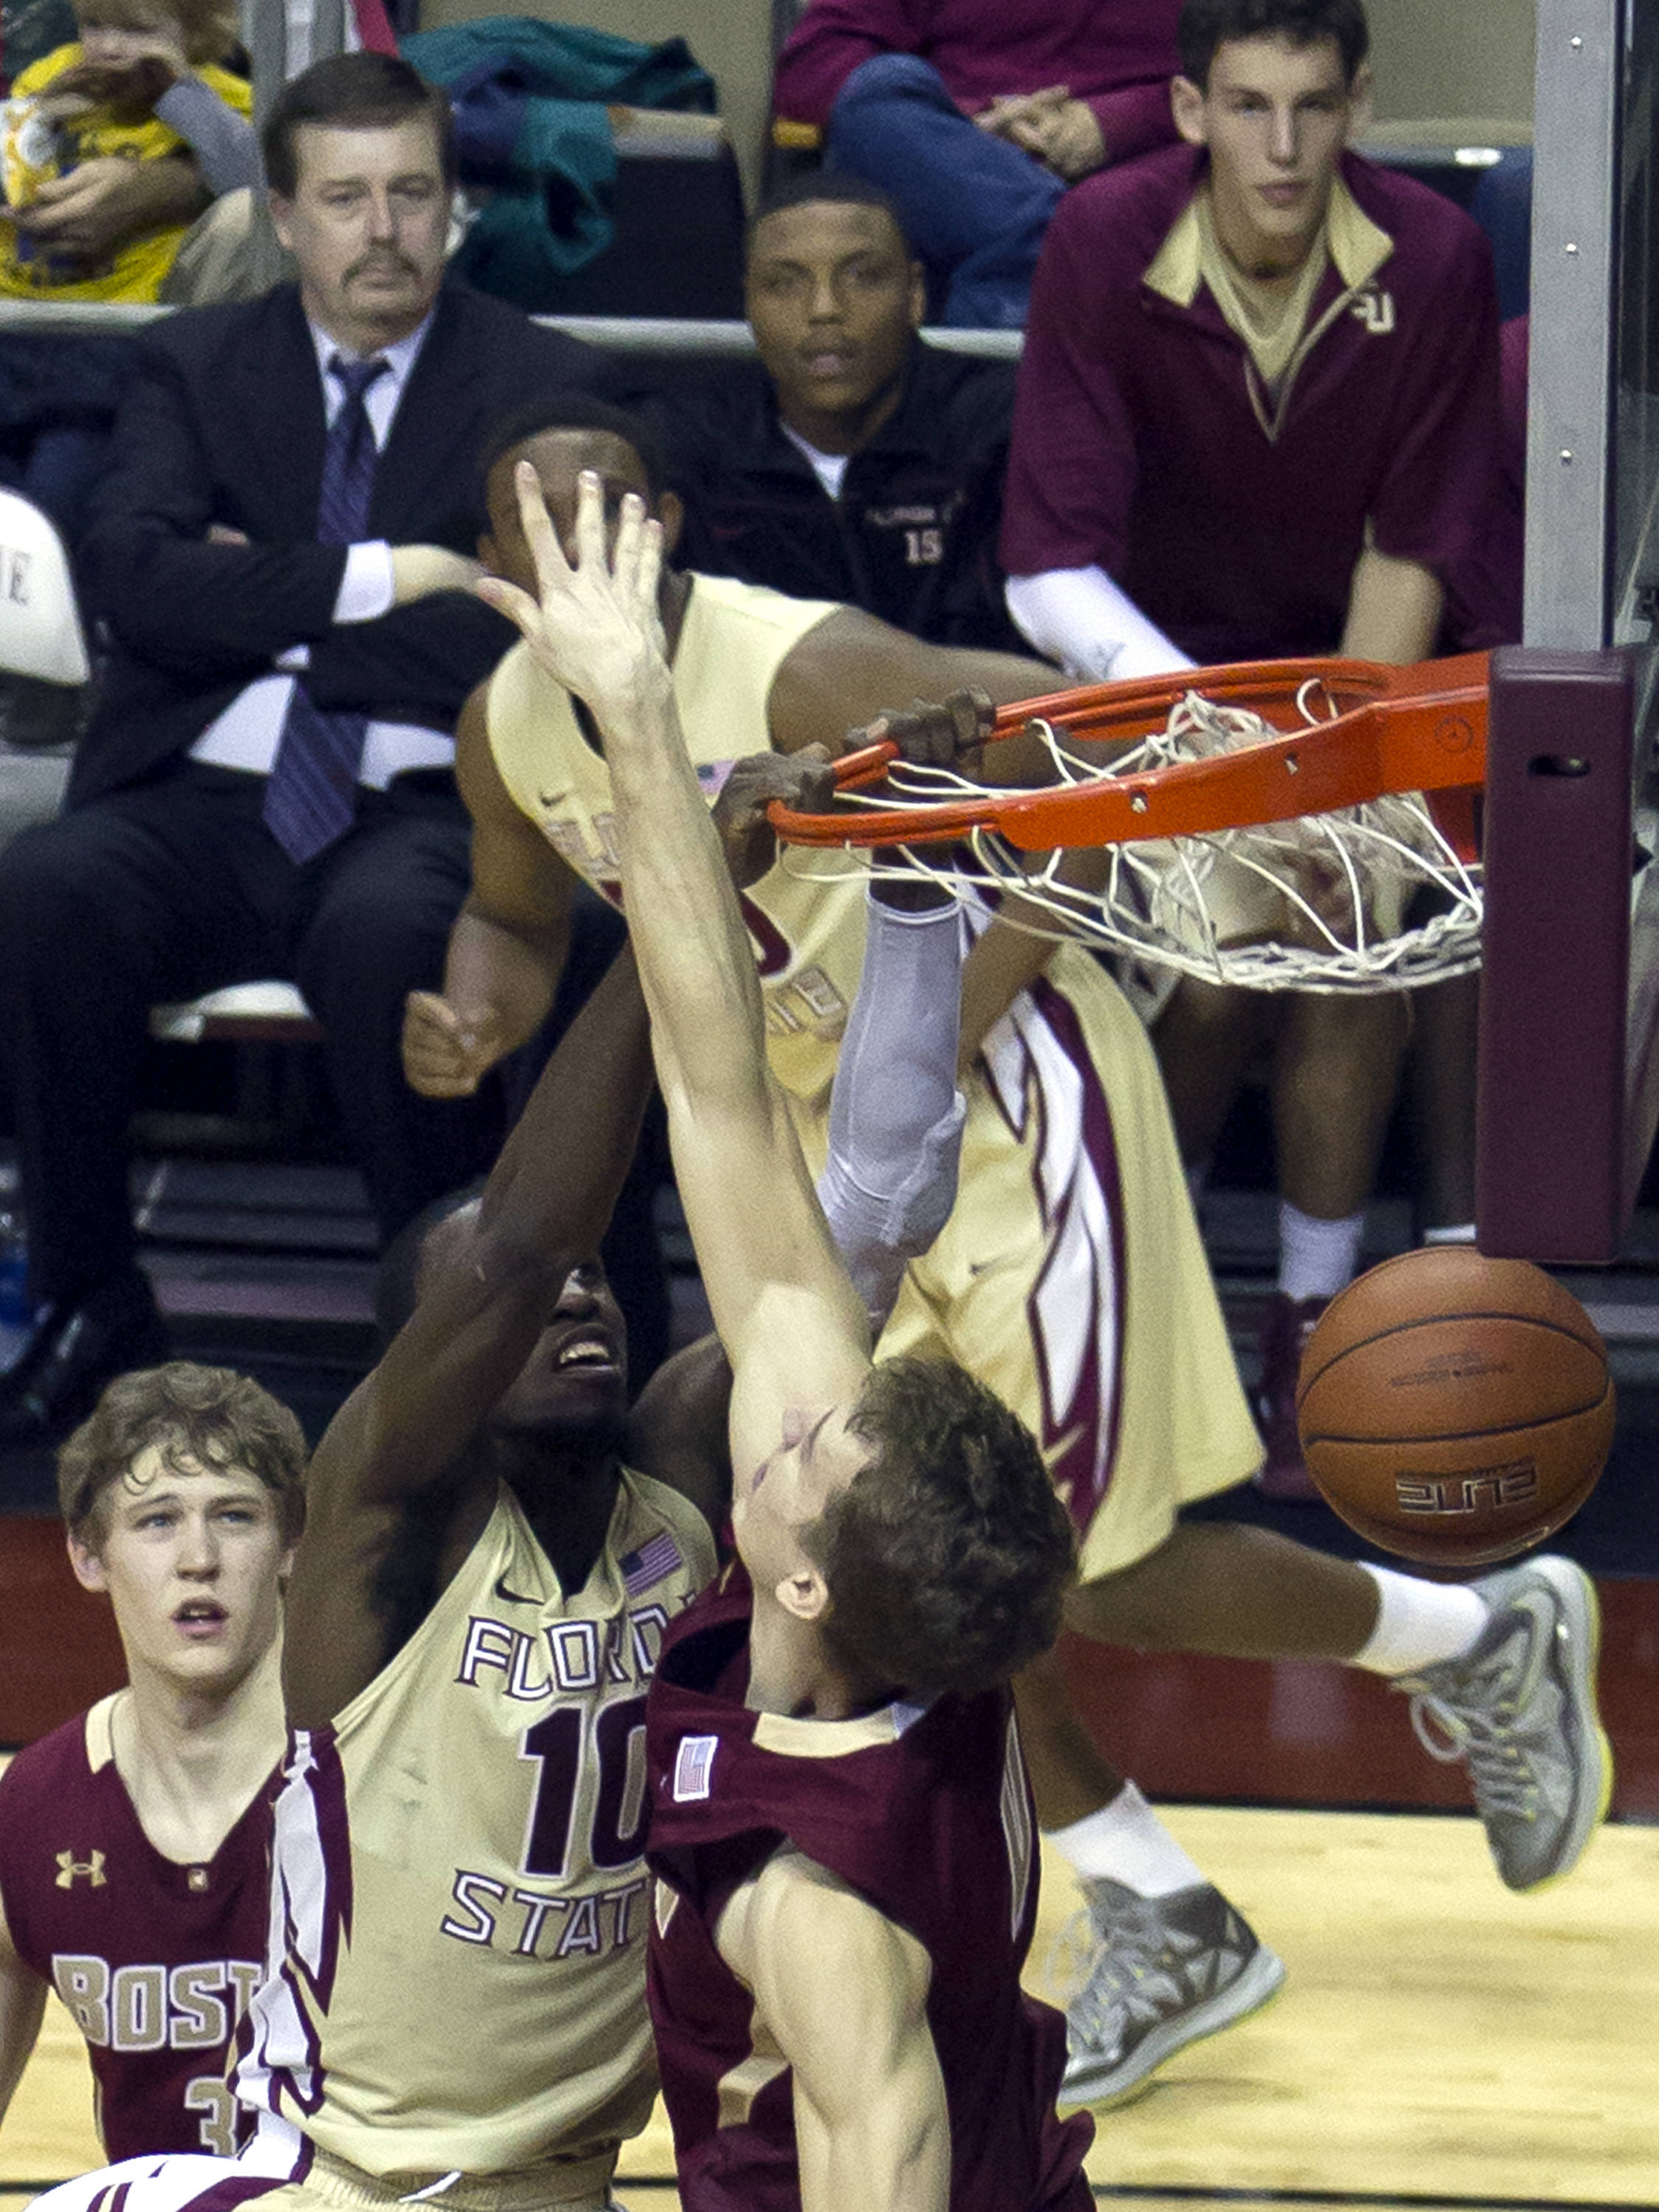 Okaro White (10), with a jam, FSU vs BC, 02/16/13. (Photo by Steve Musco)